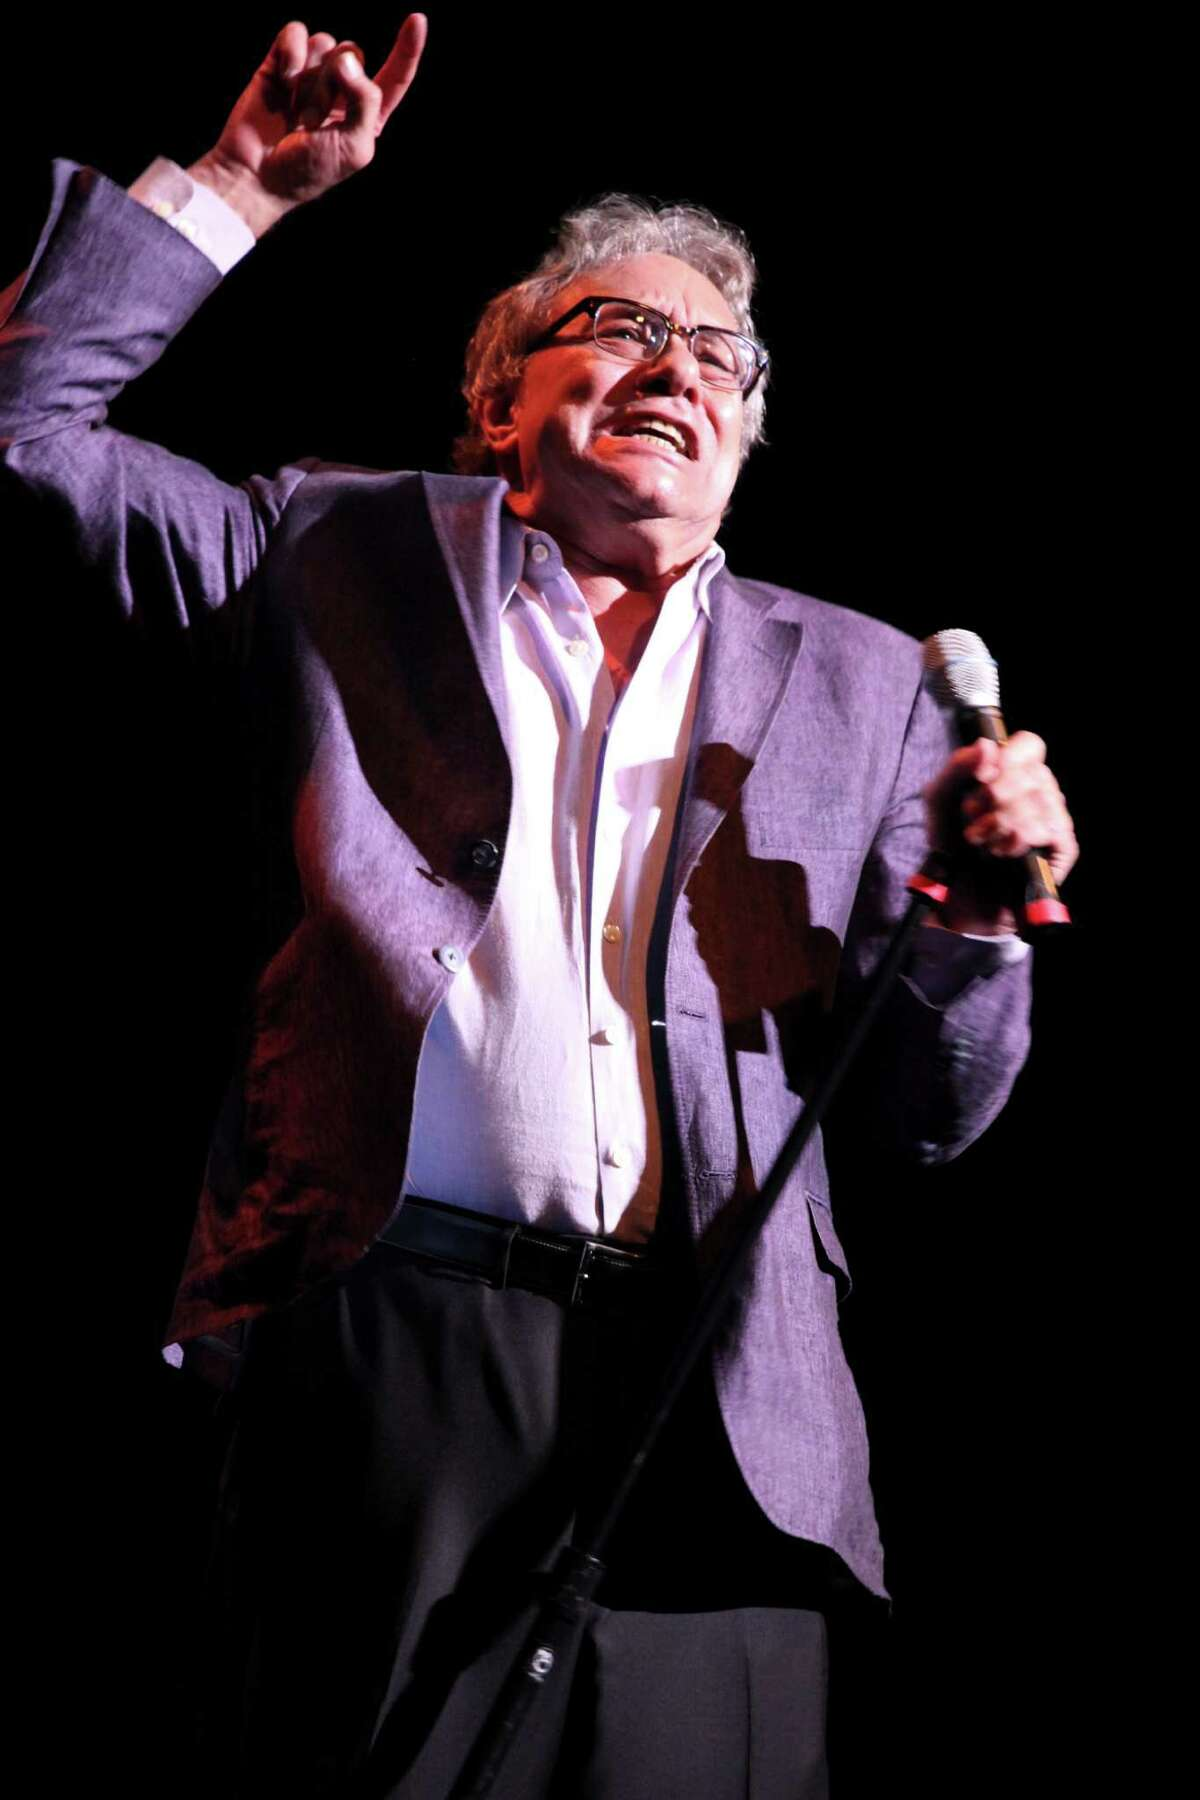 Lewis Black performs at the Warner Theater on his